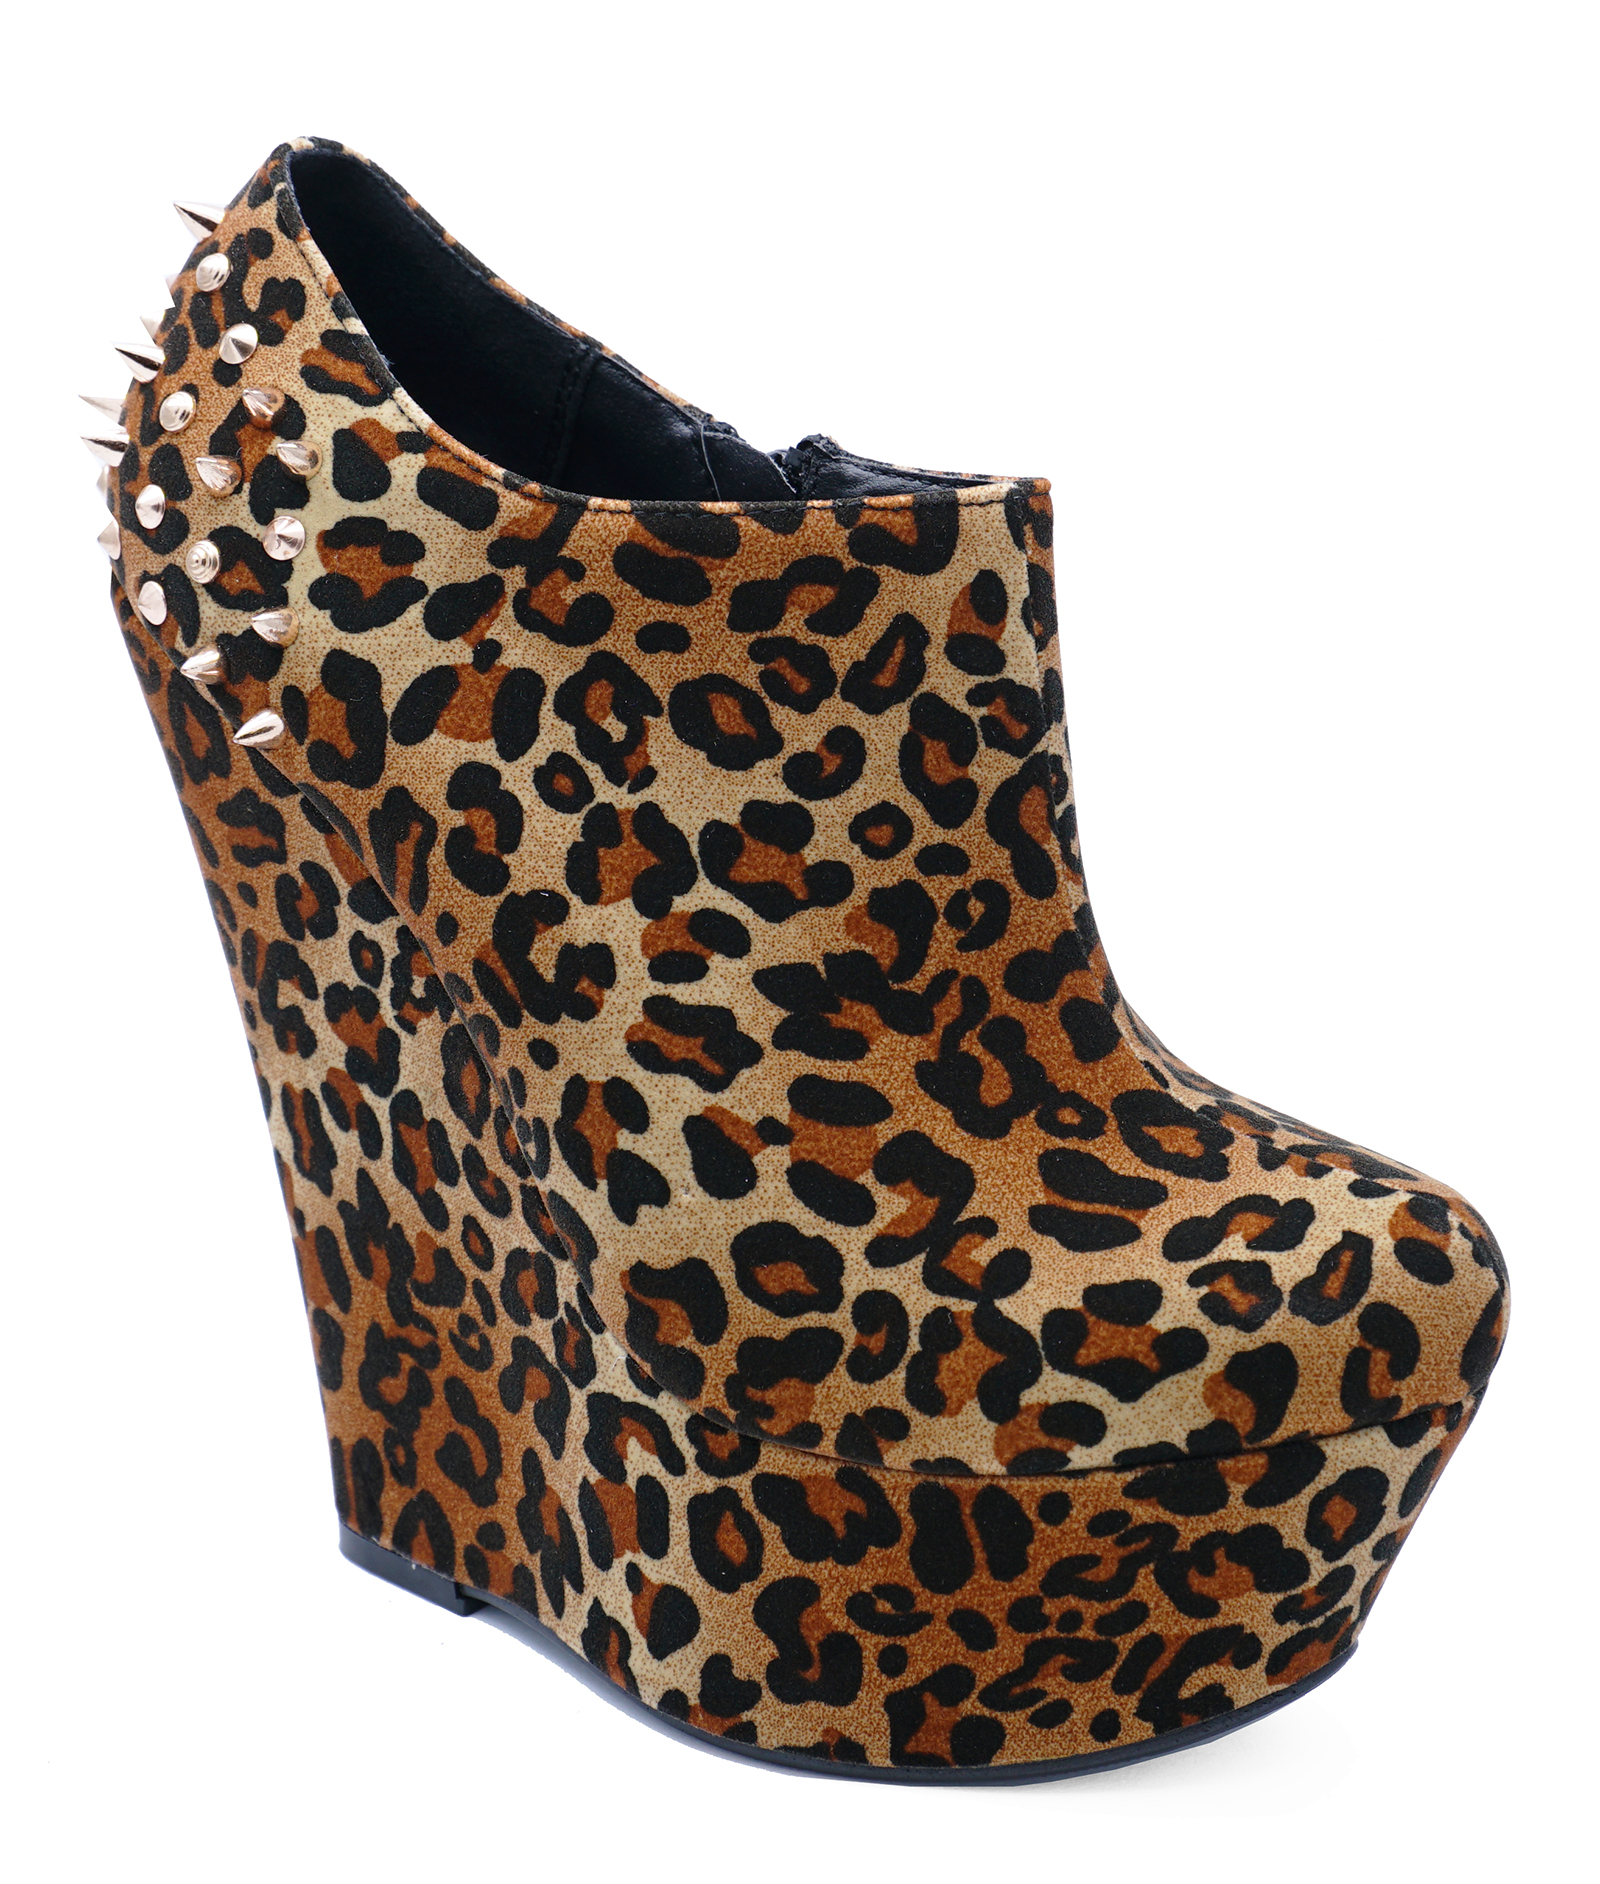 73e6a86922c8 Sentinel LADIES LEOPARD PRINT STUD WEDGES ROCK-CHICK ZIP-UP ANKLE BOOTS  SHOES SIZES 3